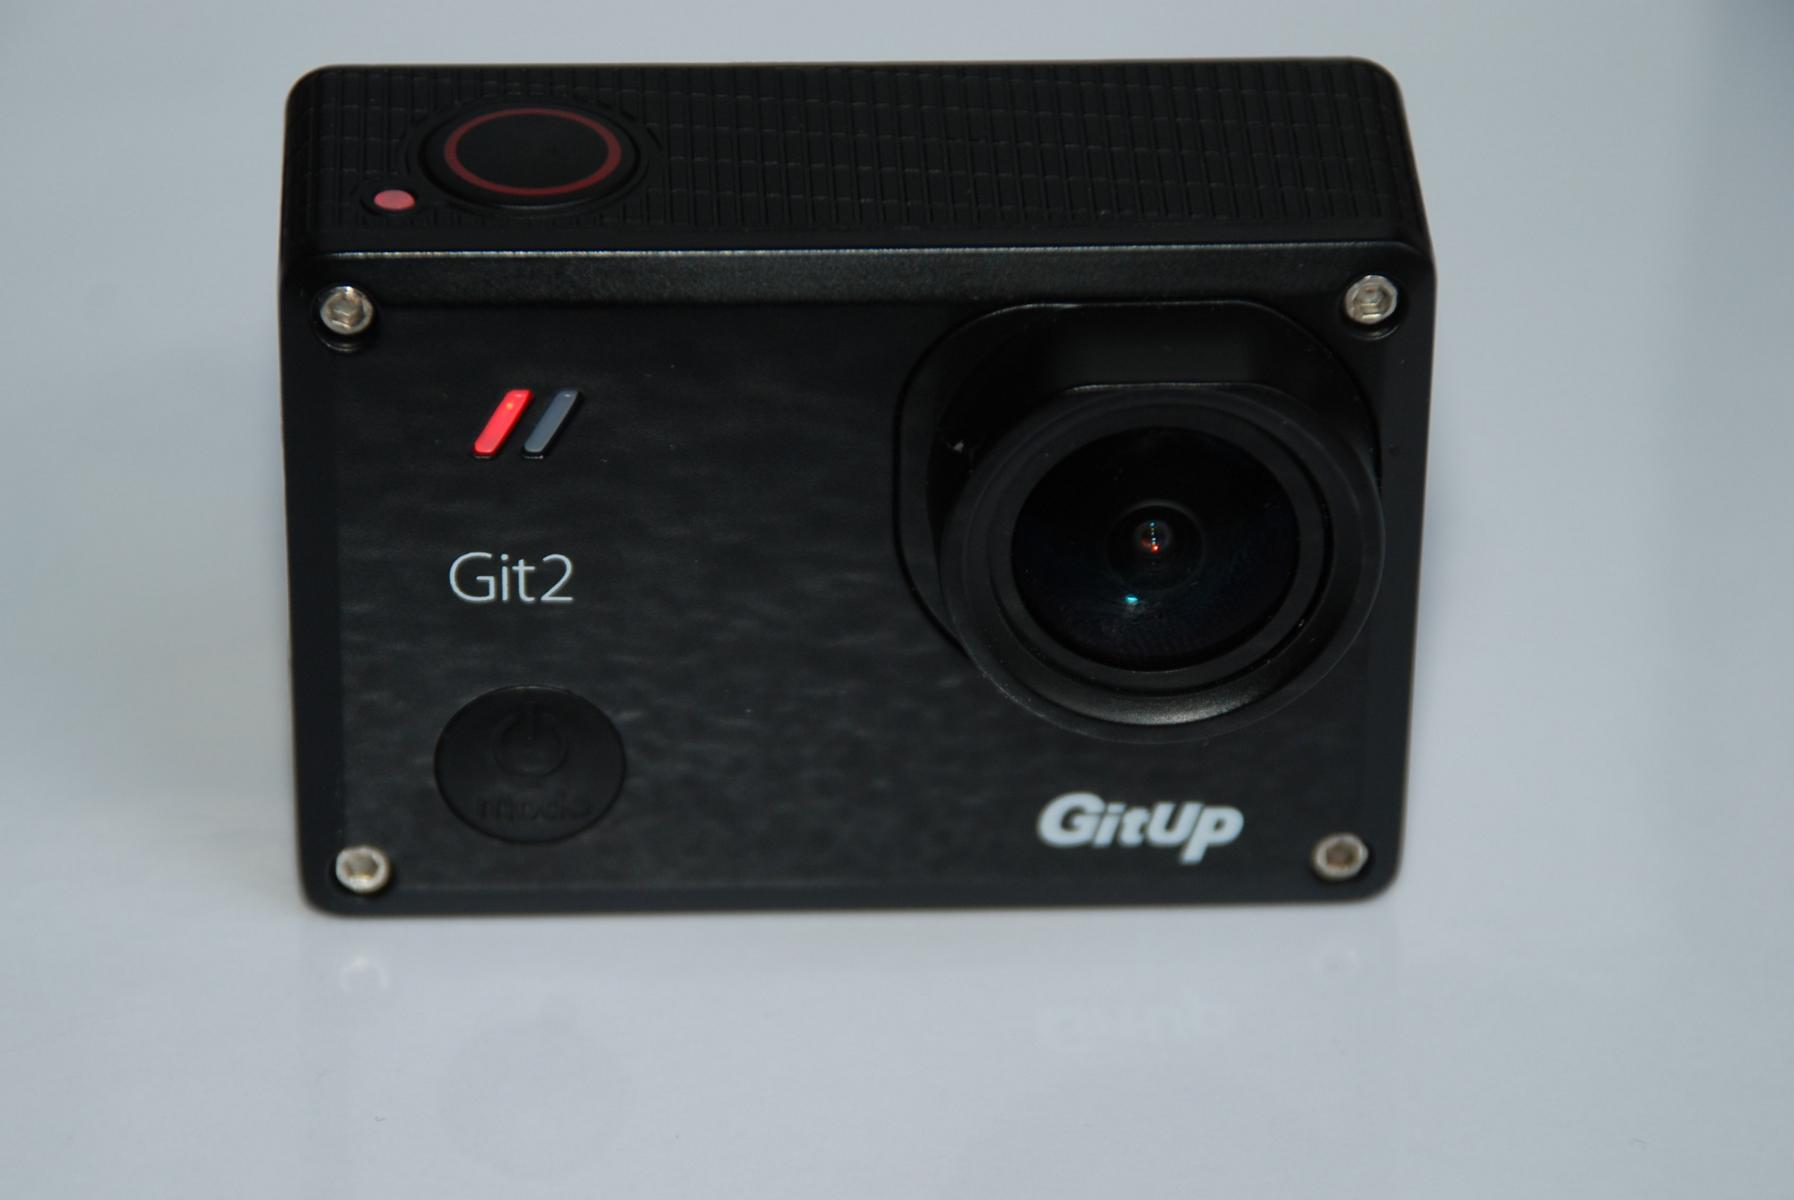 GitUp Git2 Pro Action Camera sitting on the white table.